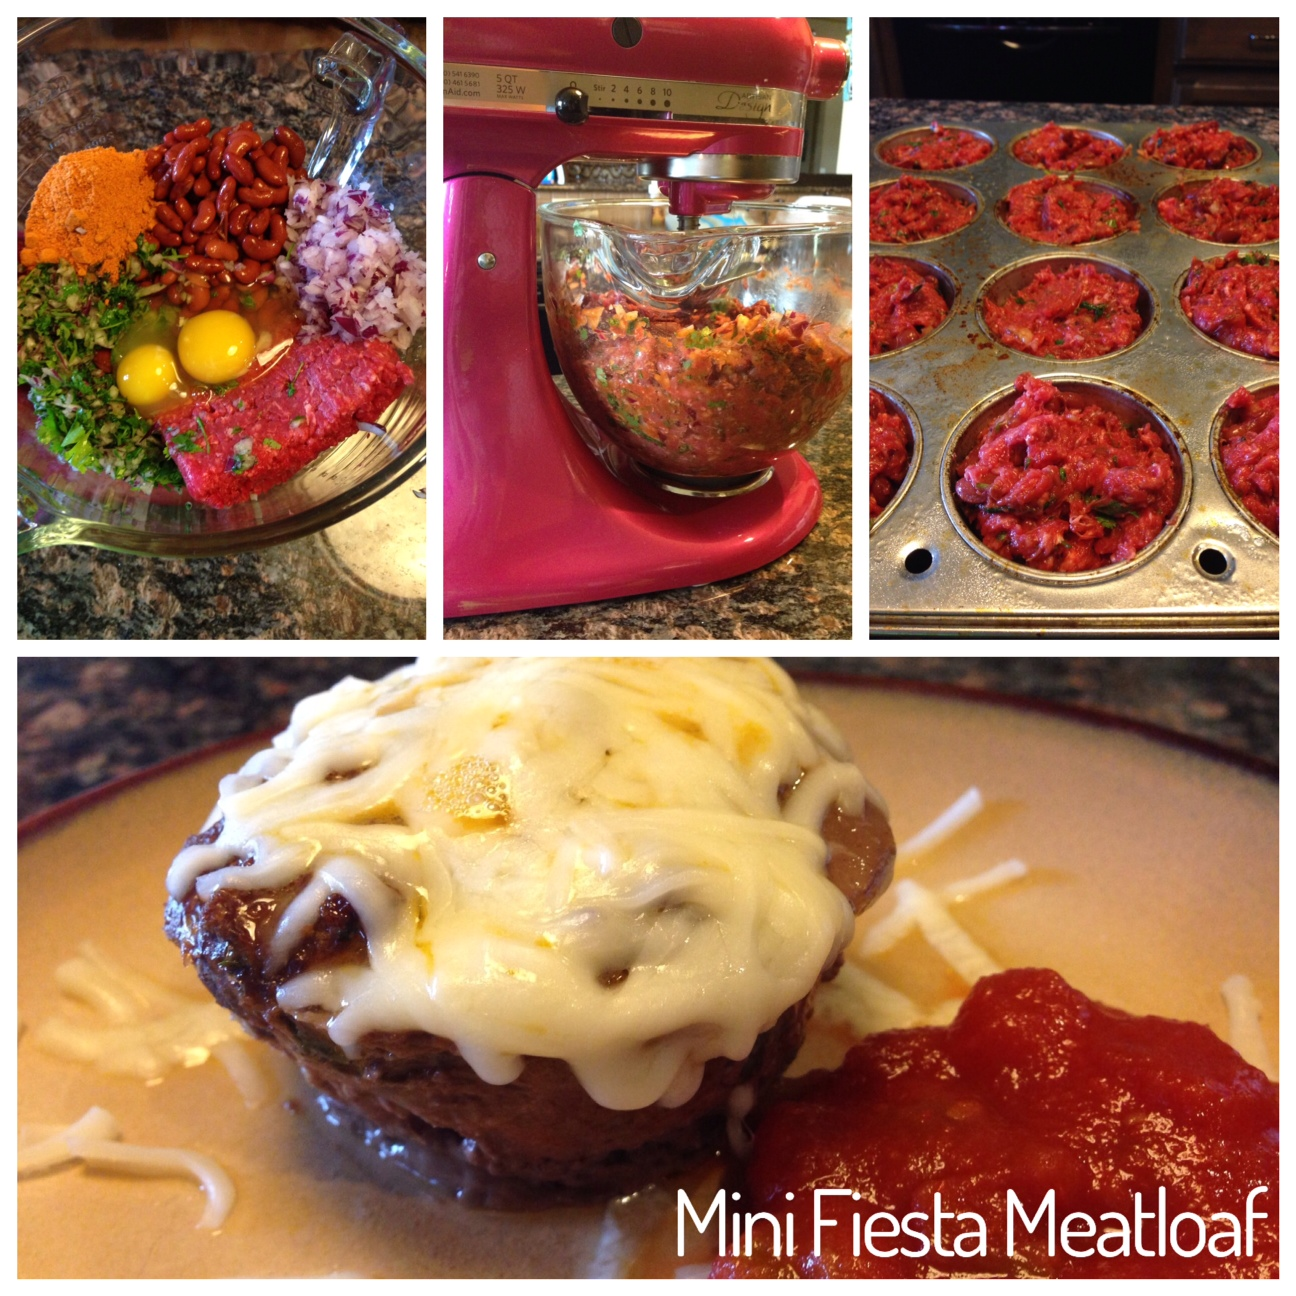 Mini Fiesta Meatloaf